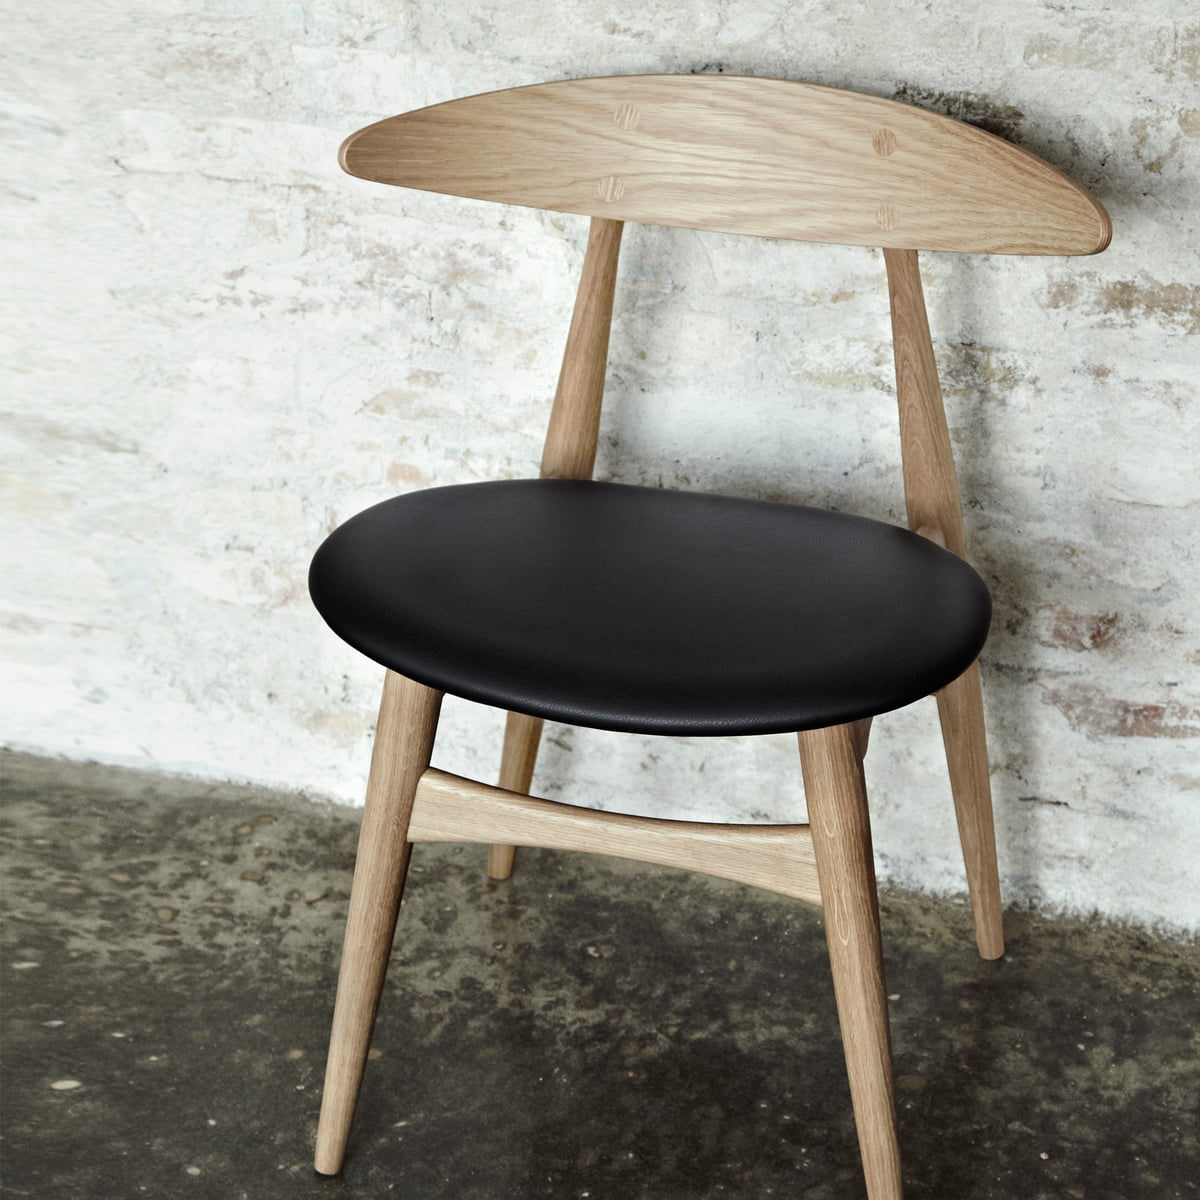 buy online cfaae c1368 Carl Hansen - CH33T, Beech black lacquered / frame: beech black lacquered